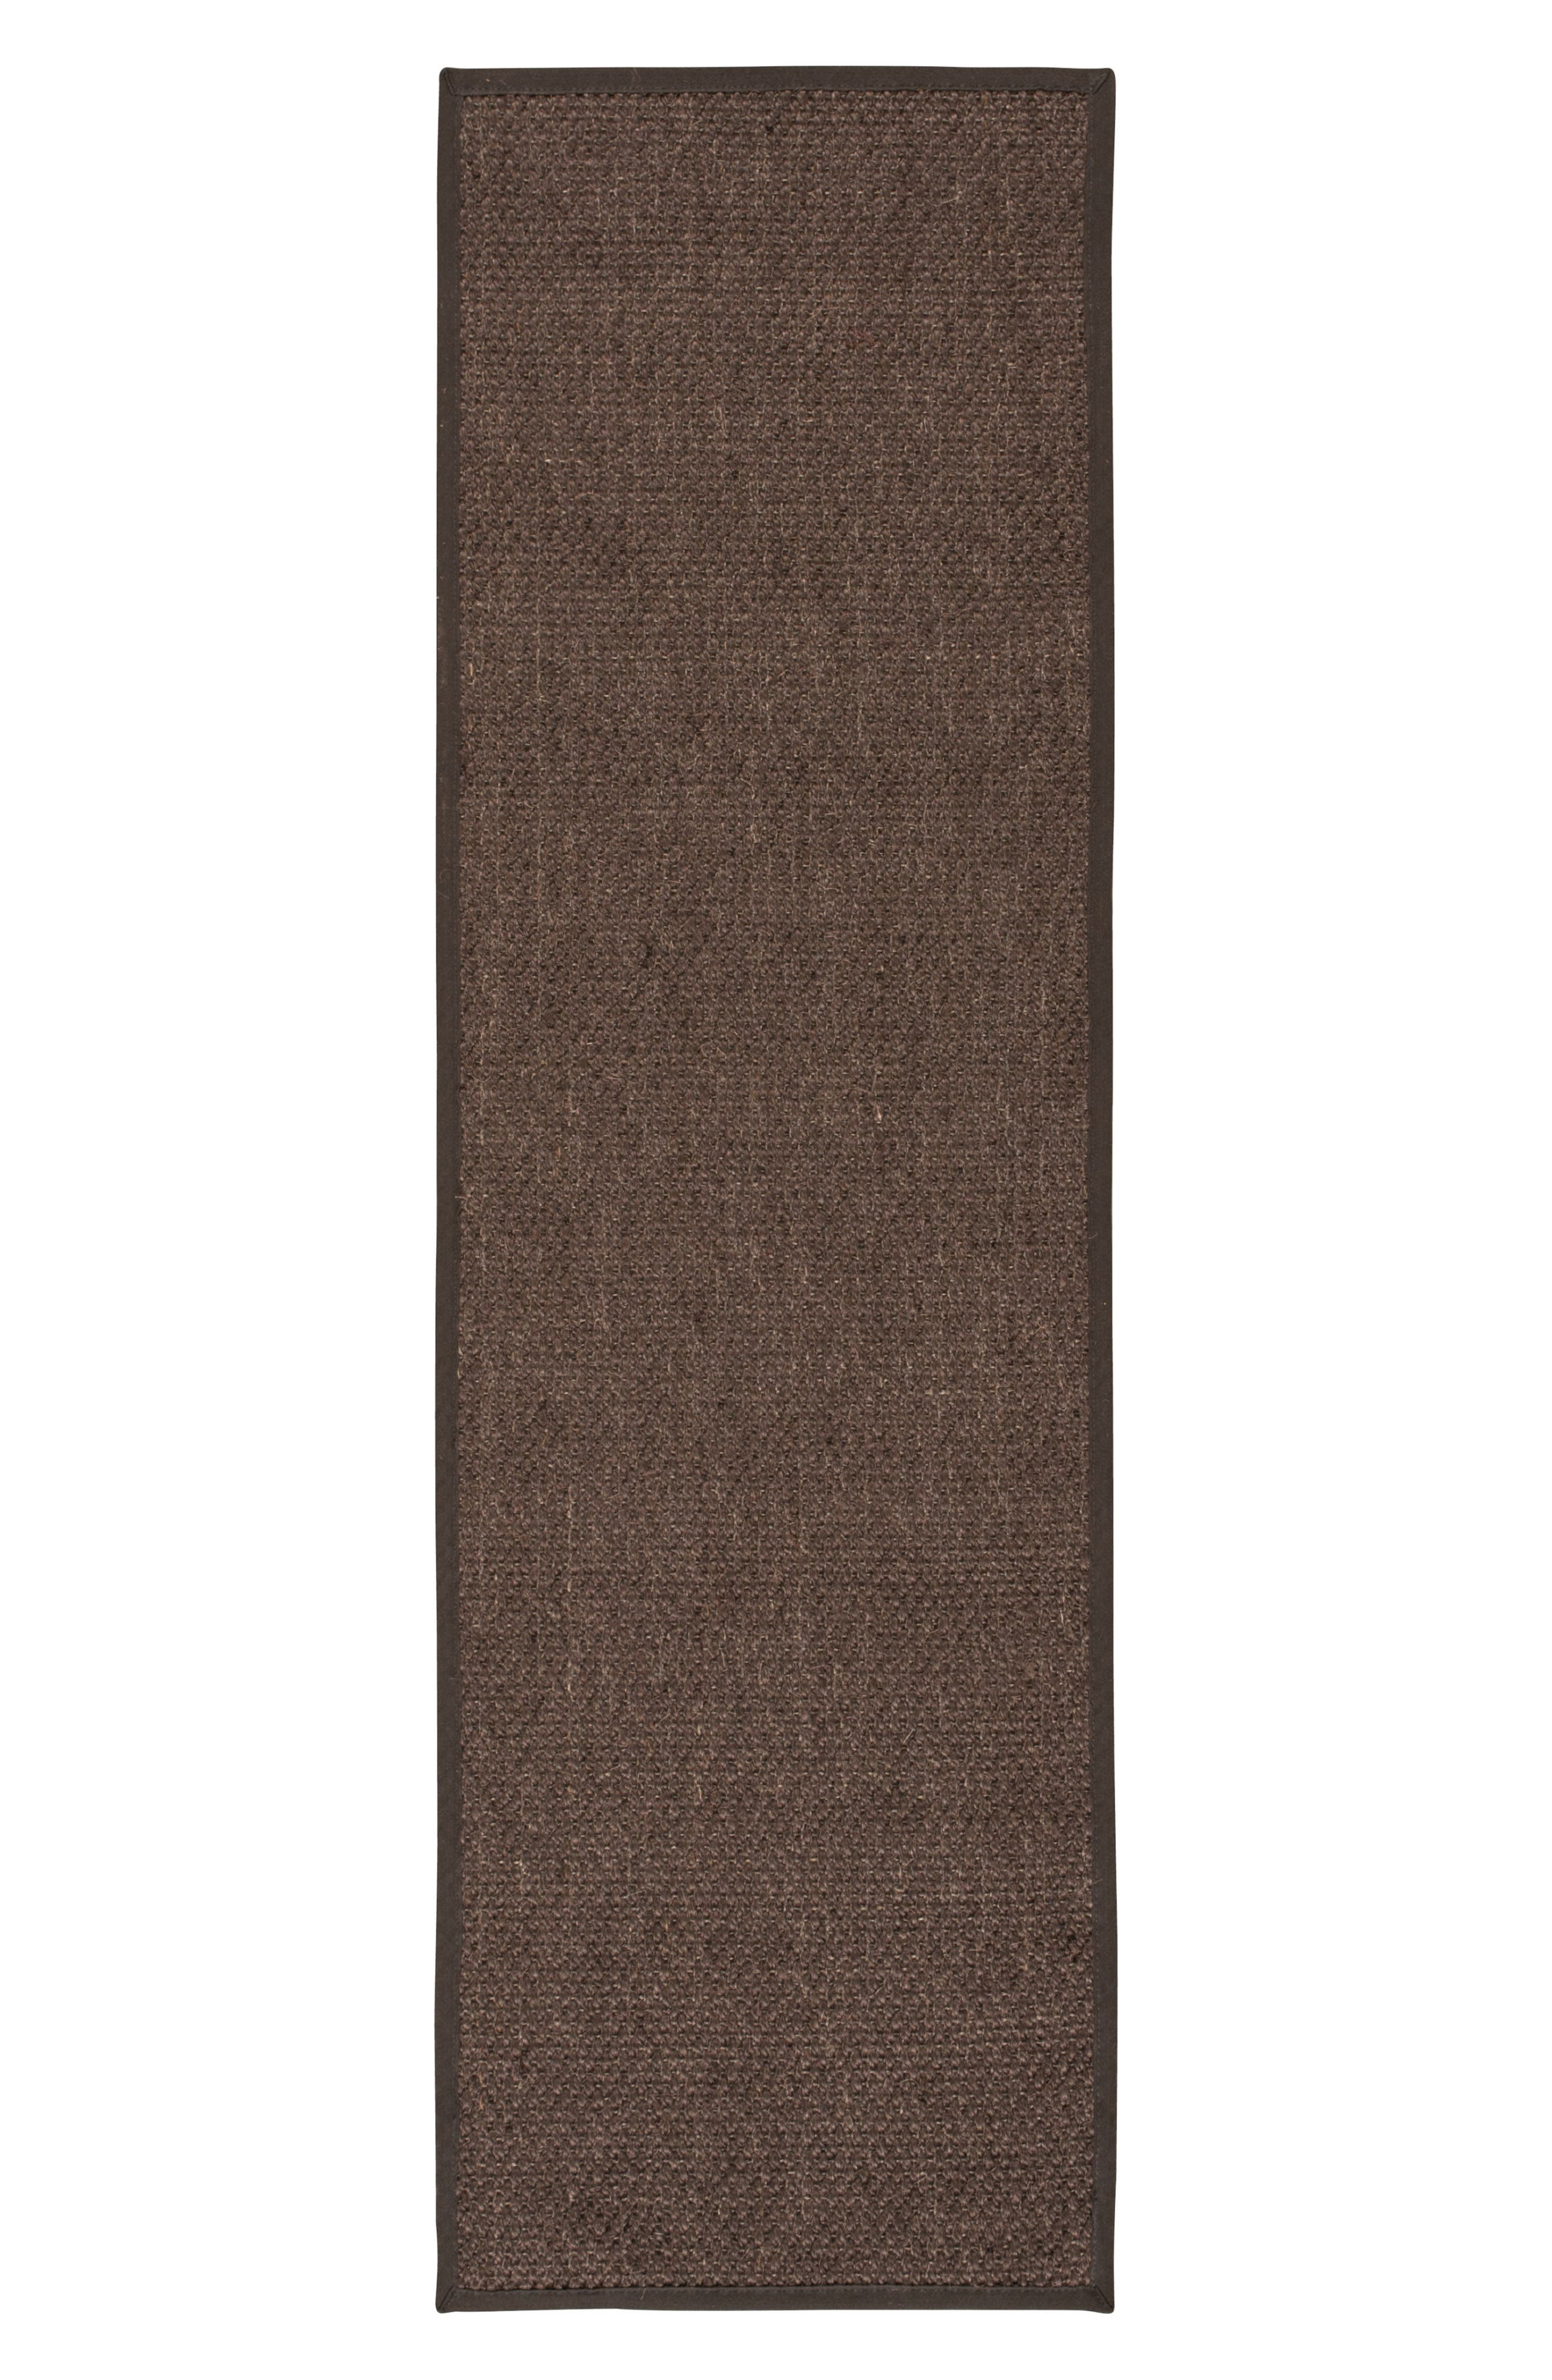 Kerala Java Sisal Area Rug,                             Alternate thumbnail 2, color,                             Charcoal